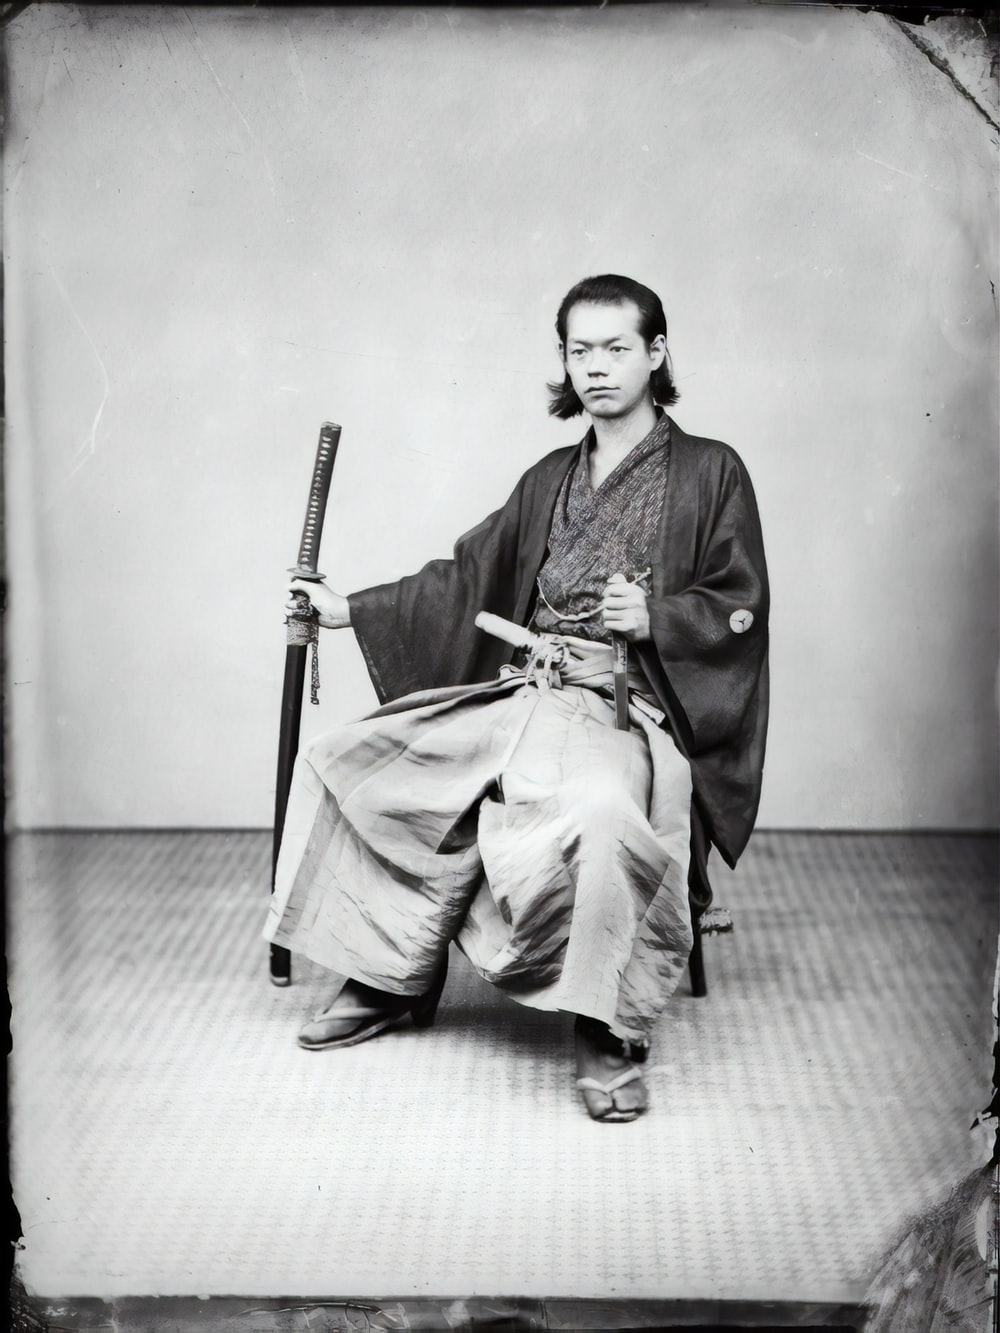 man in black coat and pants sitting on chair